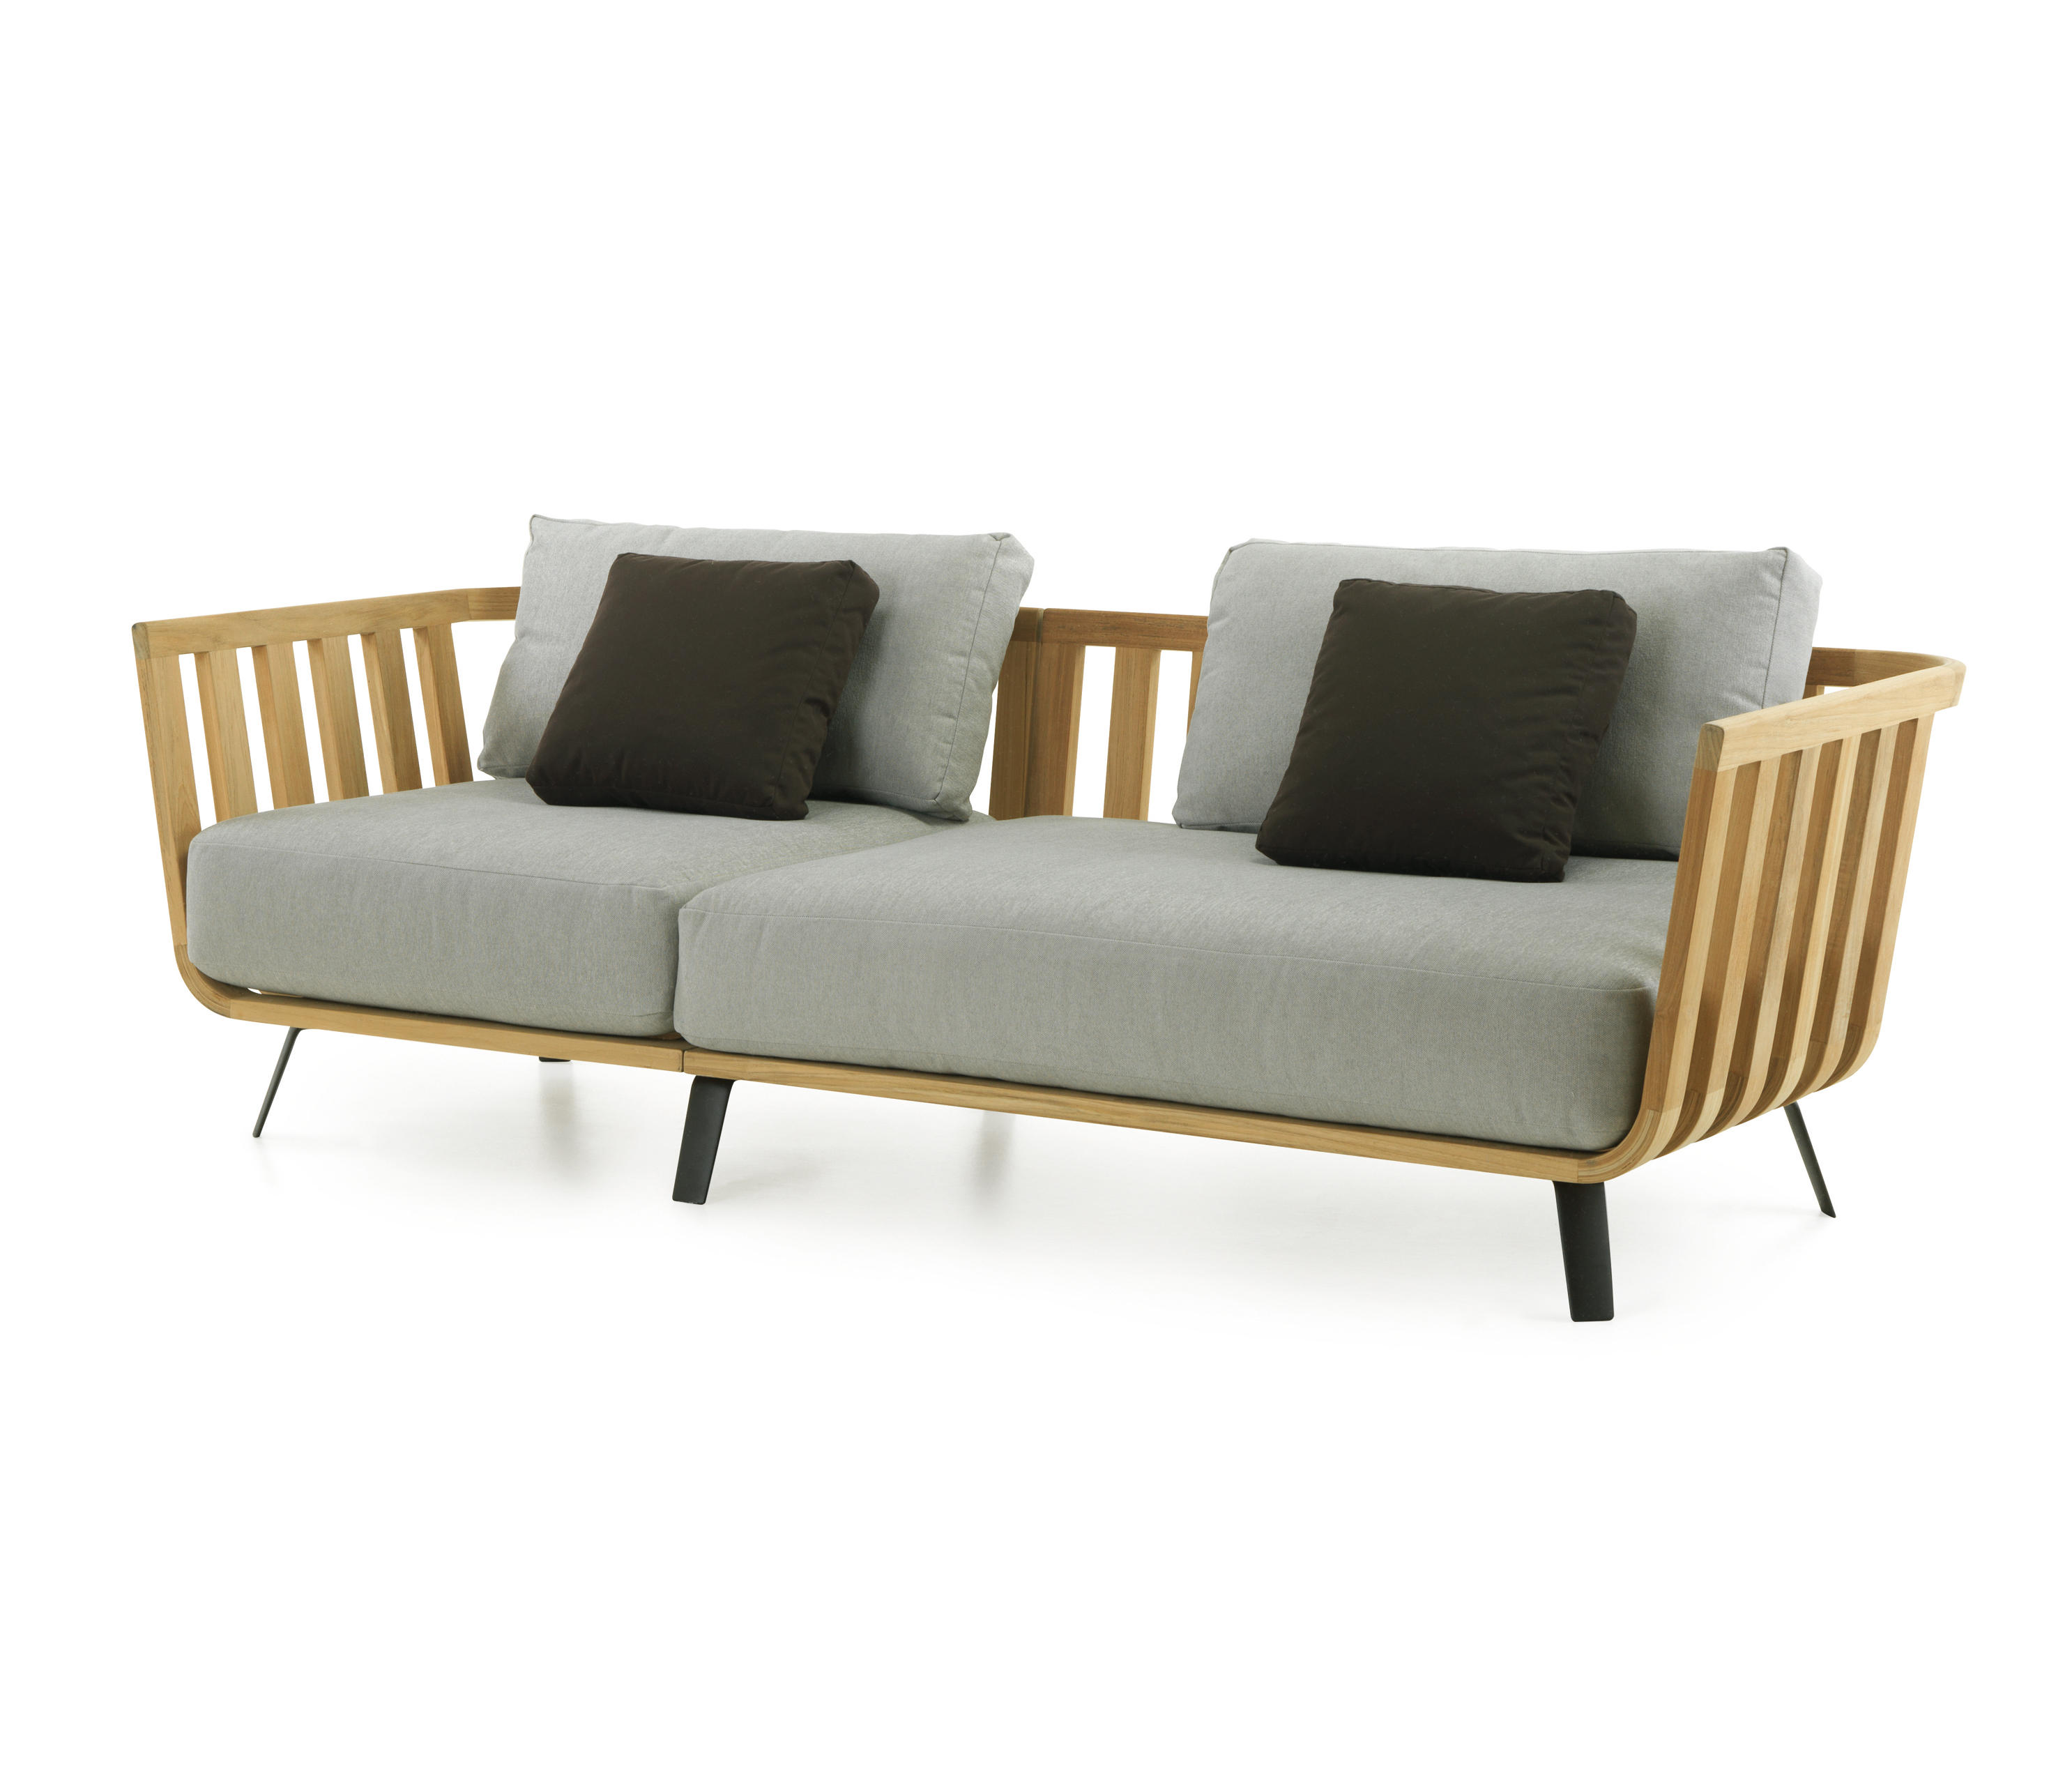 WELCOME - Sofas von Unopiù | Architonic